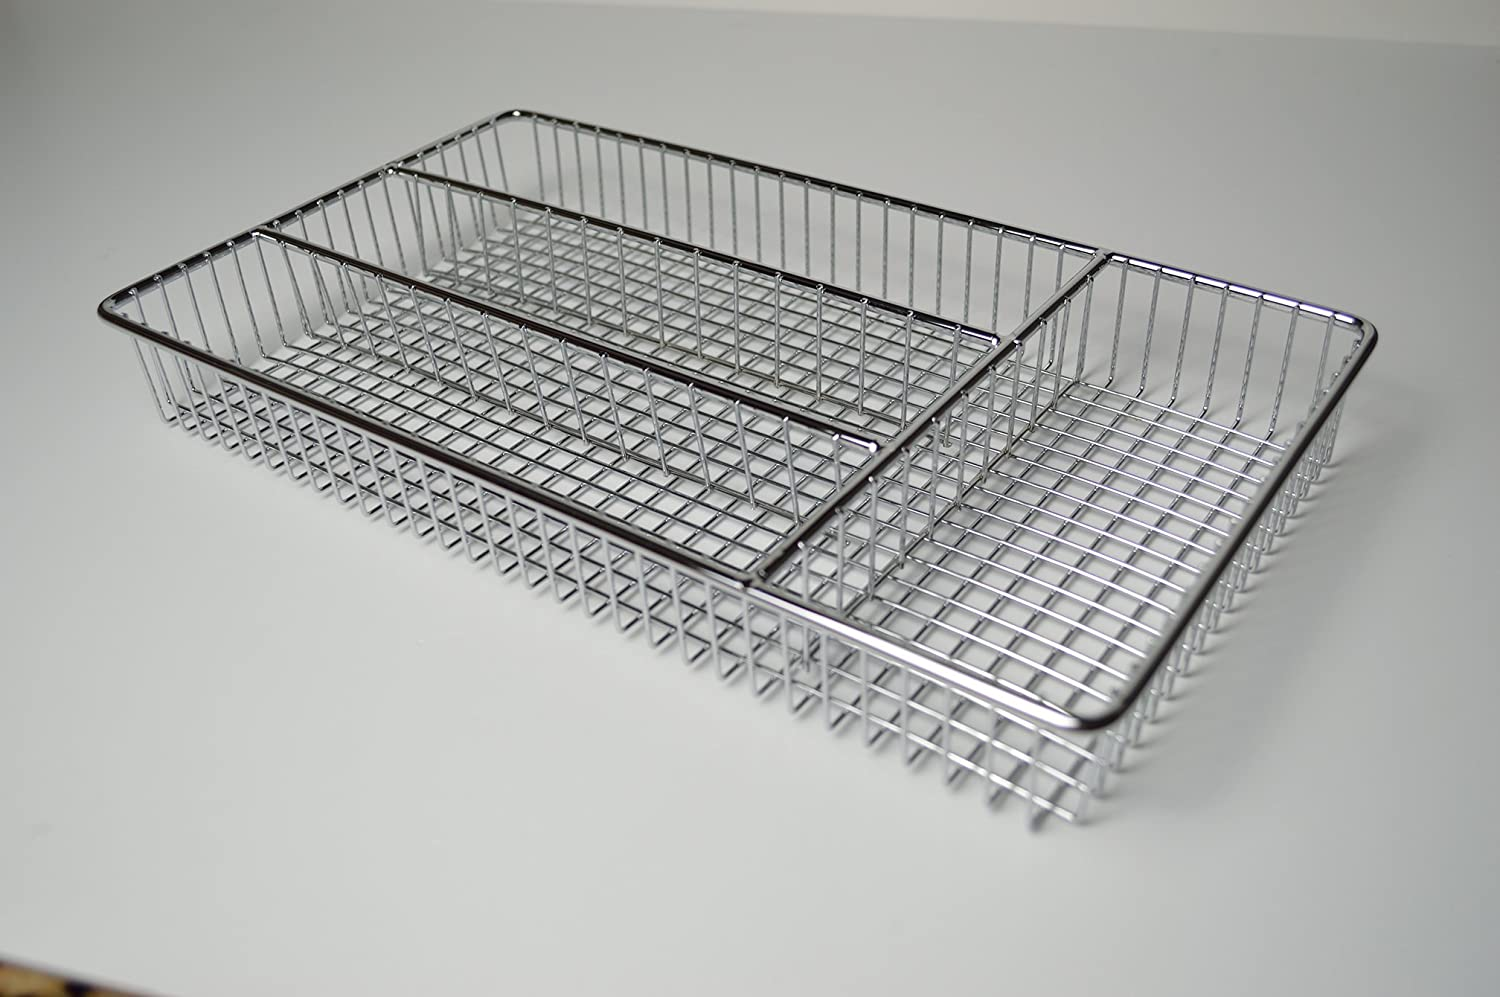 Deluxe Stainless Steel Chrome Small Cutlery Tray - L: 32cm x W: 18.5cm x H: 4cm (Stainless Steel) FurnitureXtra